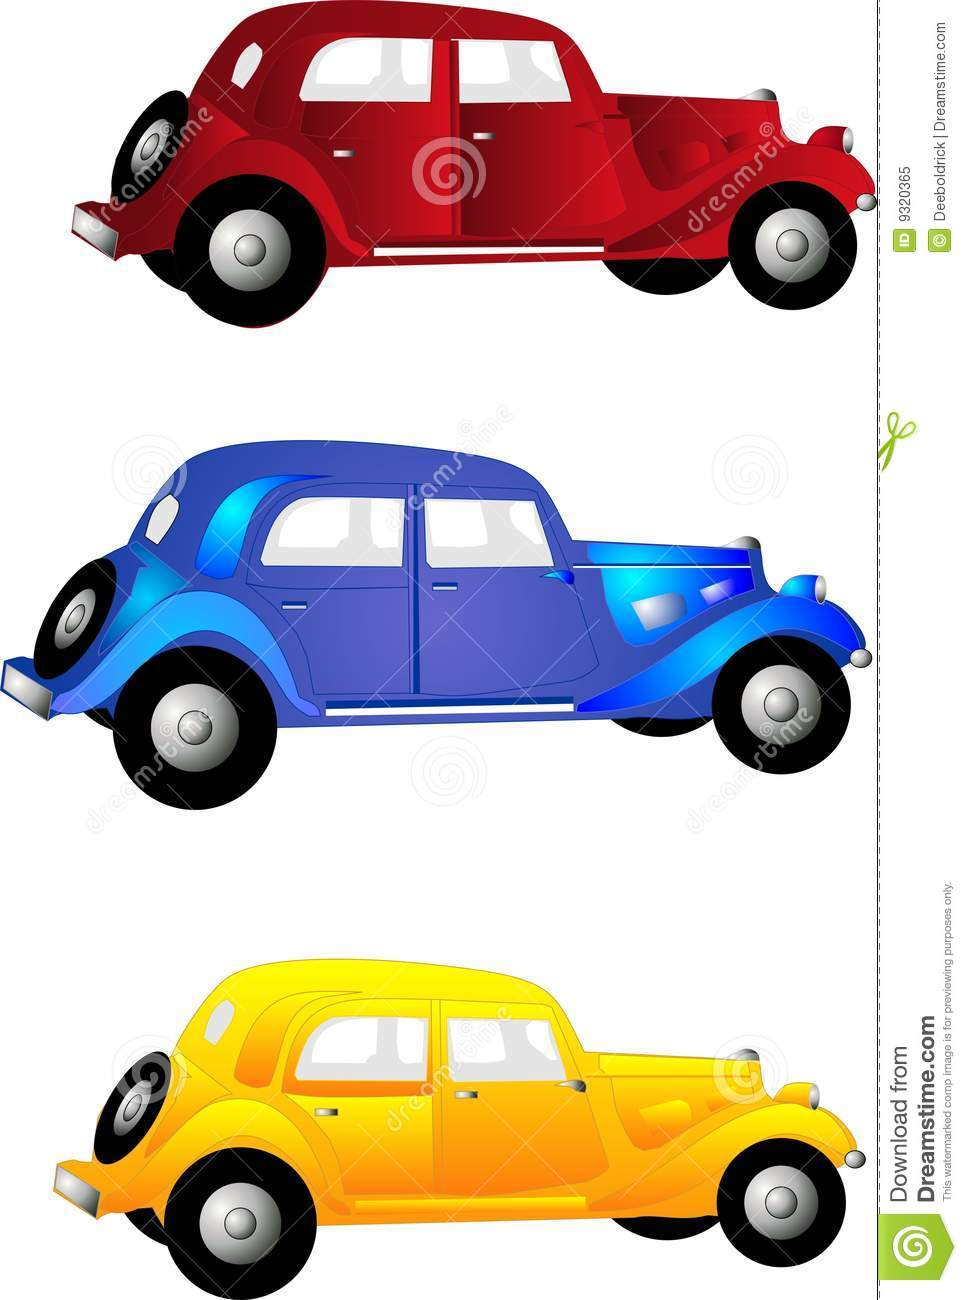 3 vintage cars stock vector illustration of automobile 9320365 rh dreamstime com old car clipart vintage car clip art free images